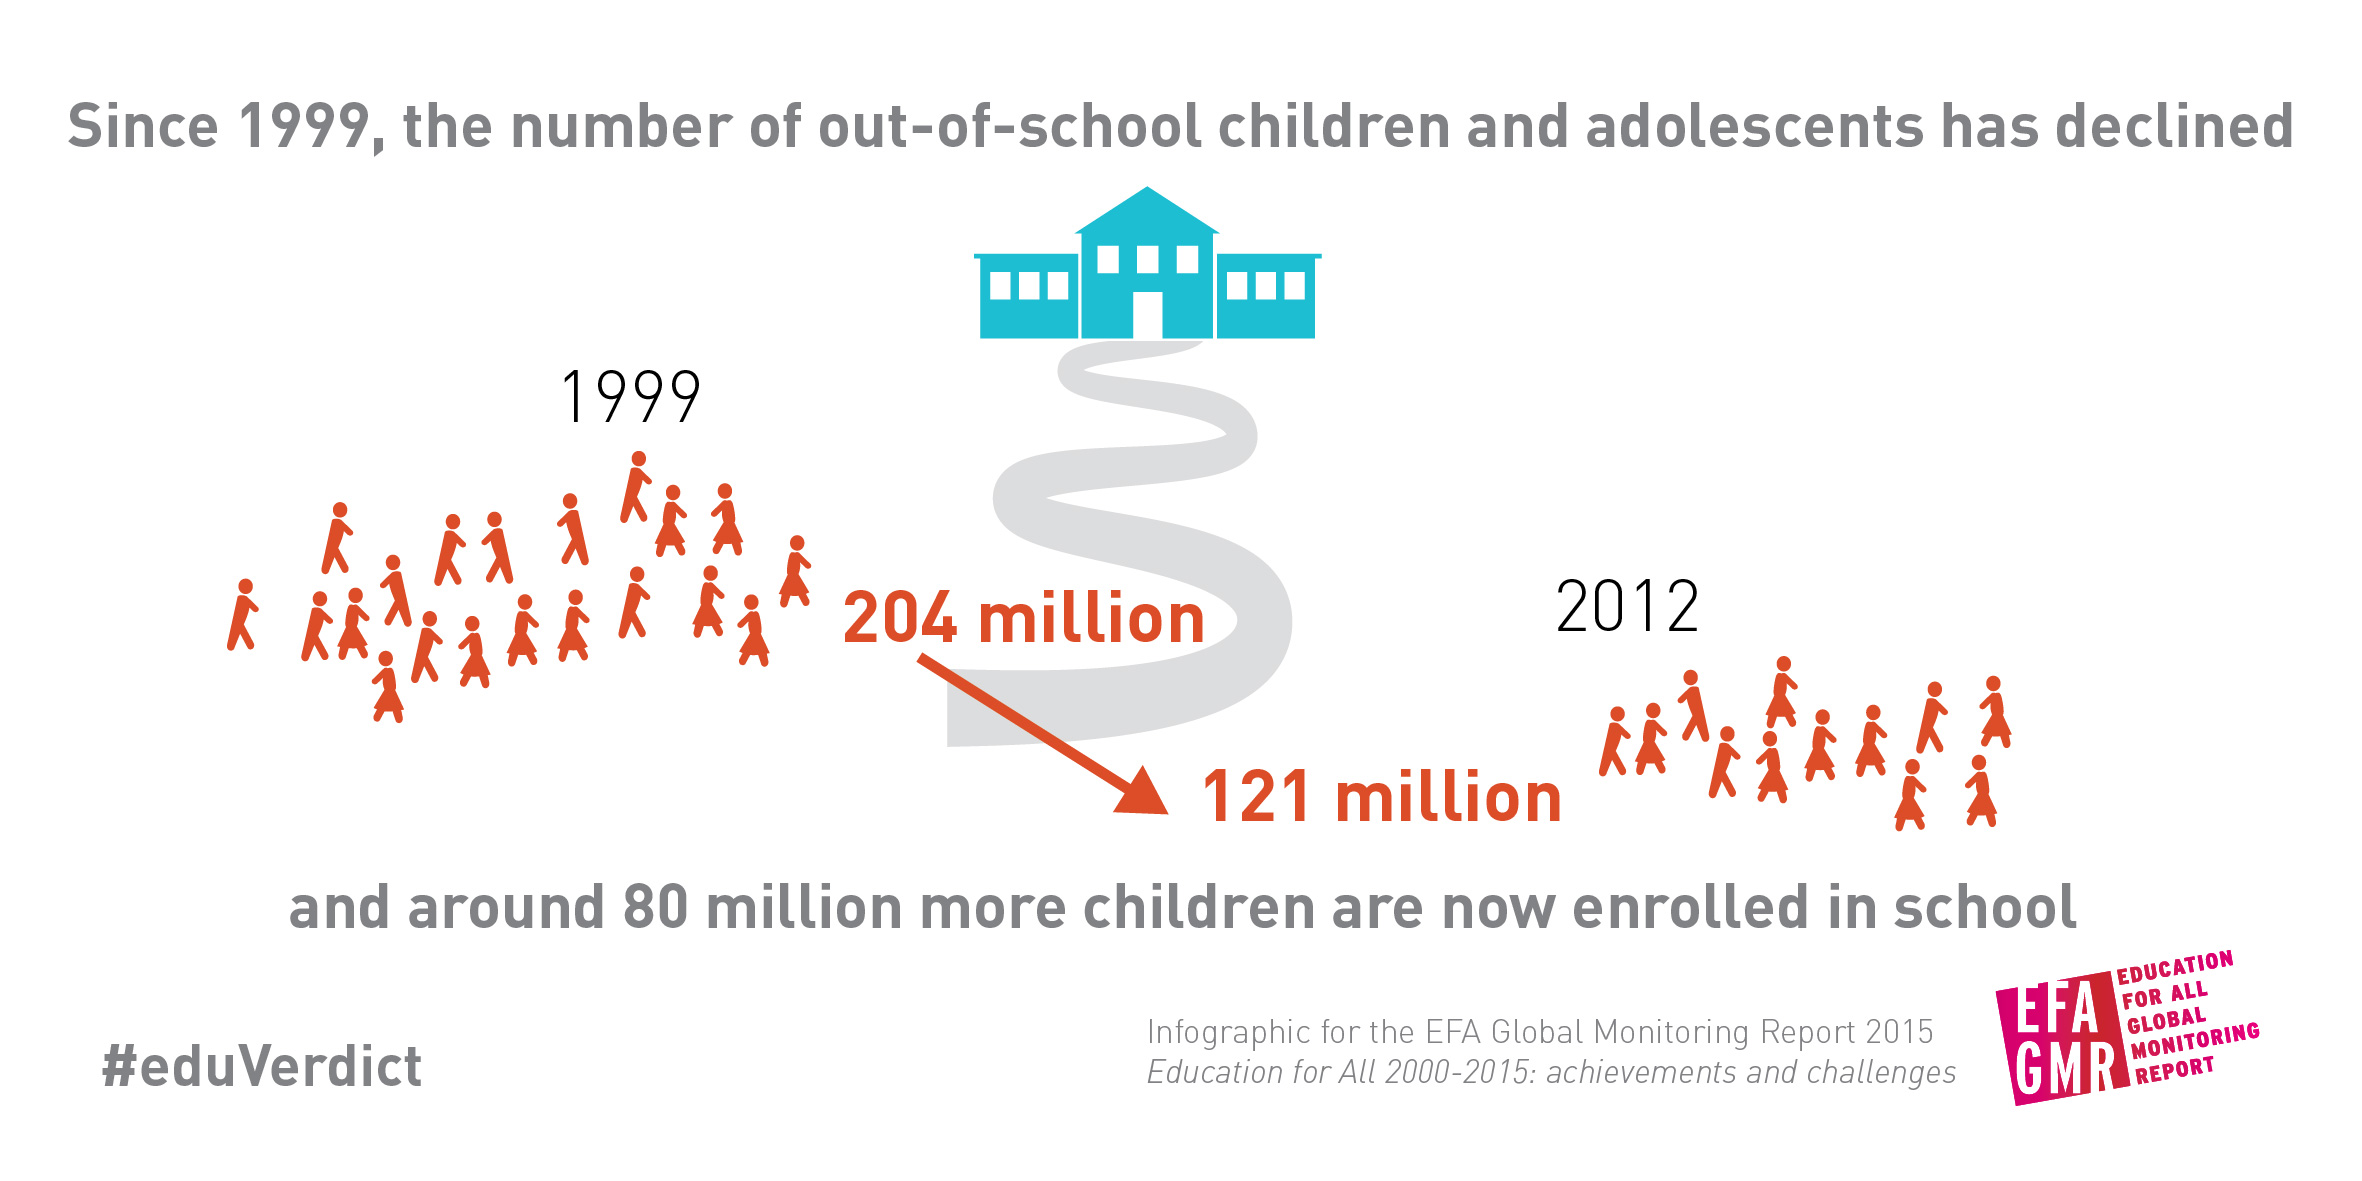 Out-of-school children: Figures from the latest Education for All Global Monitoring Report.